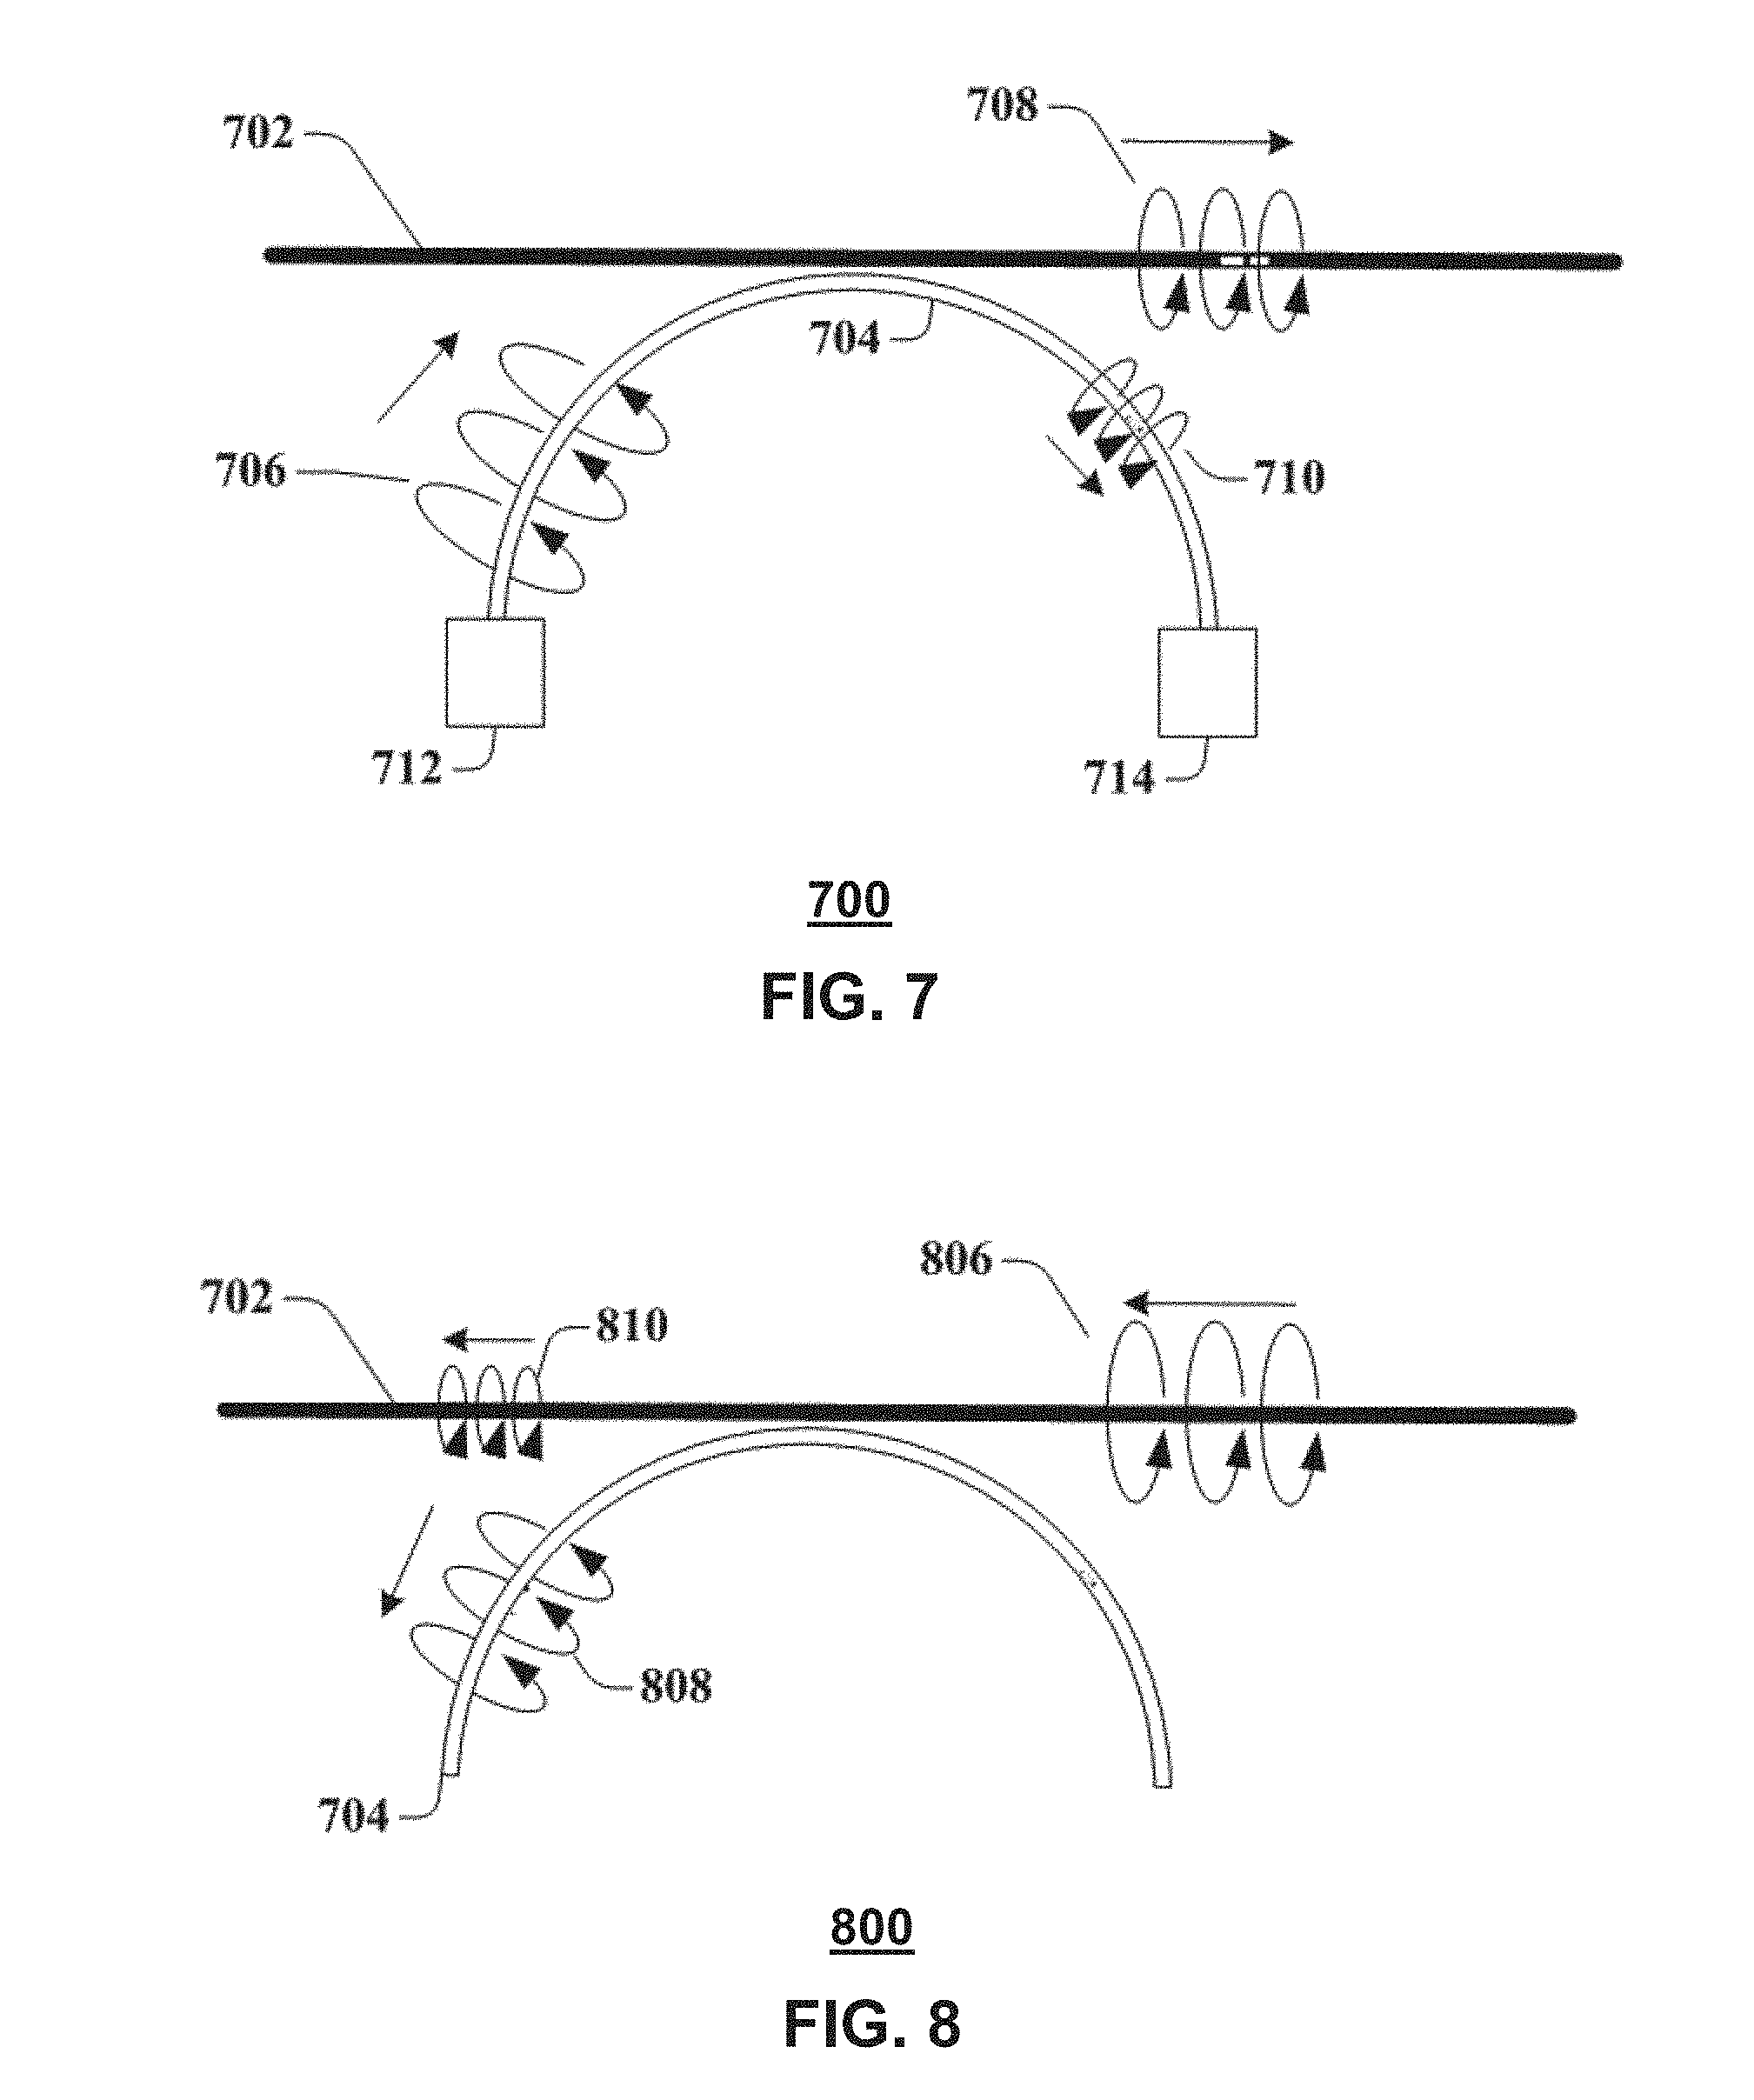 us10090606b2 antenna system with dielectric array and methods for Corner Grounded Delta System us10090606b2 antenna system with dielectric array and methods for use therewith patents